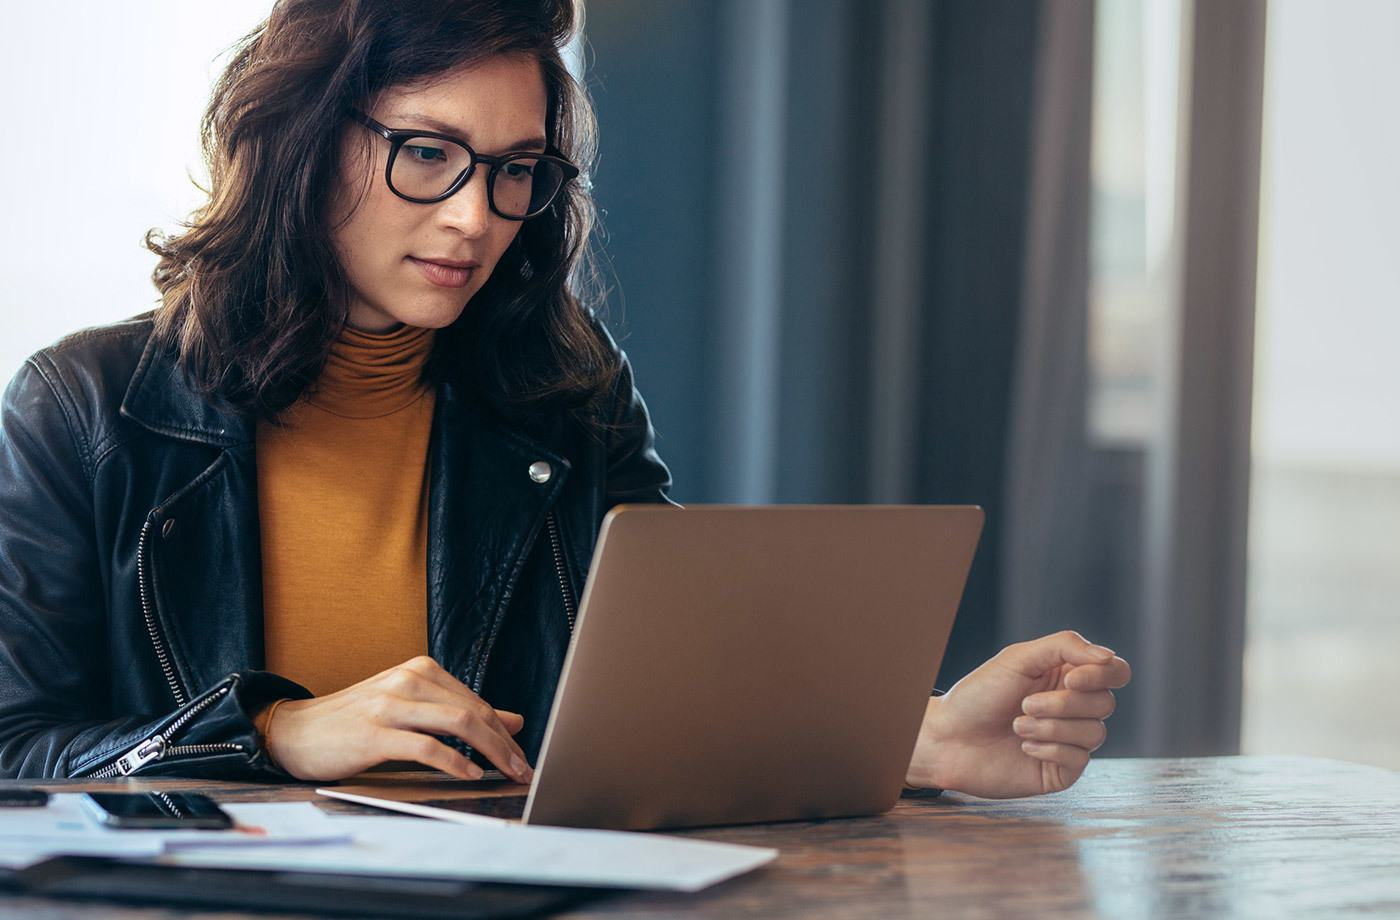 YOU HAVE THE RIGHT TO REWRITE YOUR RESUME AS MANY TIMES AS YOU WANT, ACCORDING TO A CAREER PRO